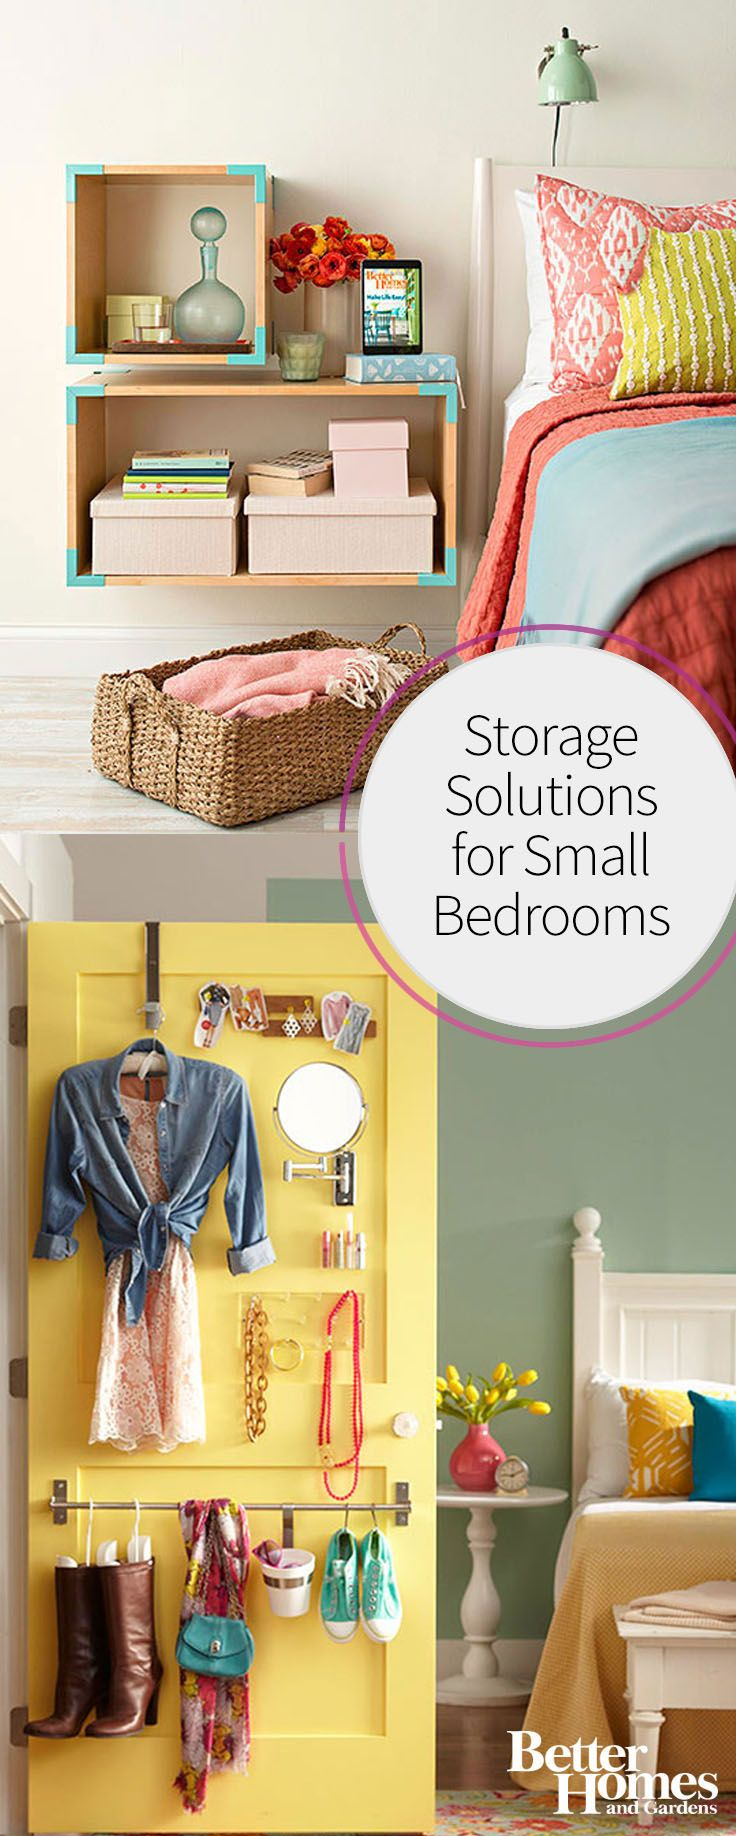 Best 25 small bedroom storage ideas on pinterest - Closet storage ideas small spaces model ...